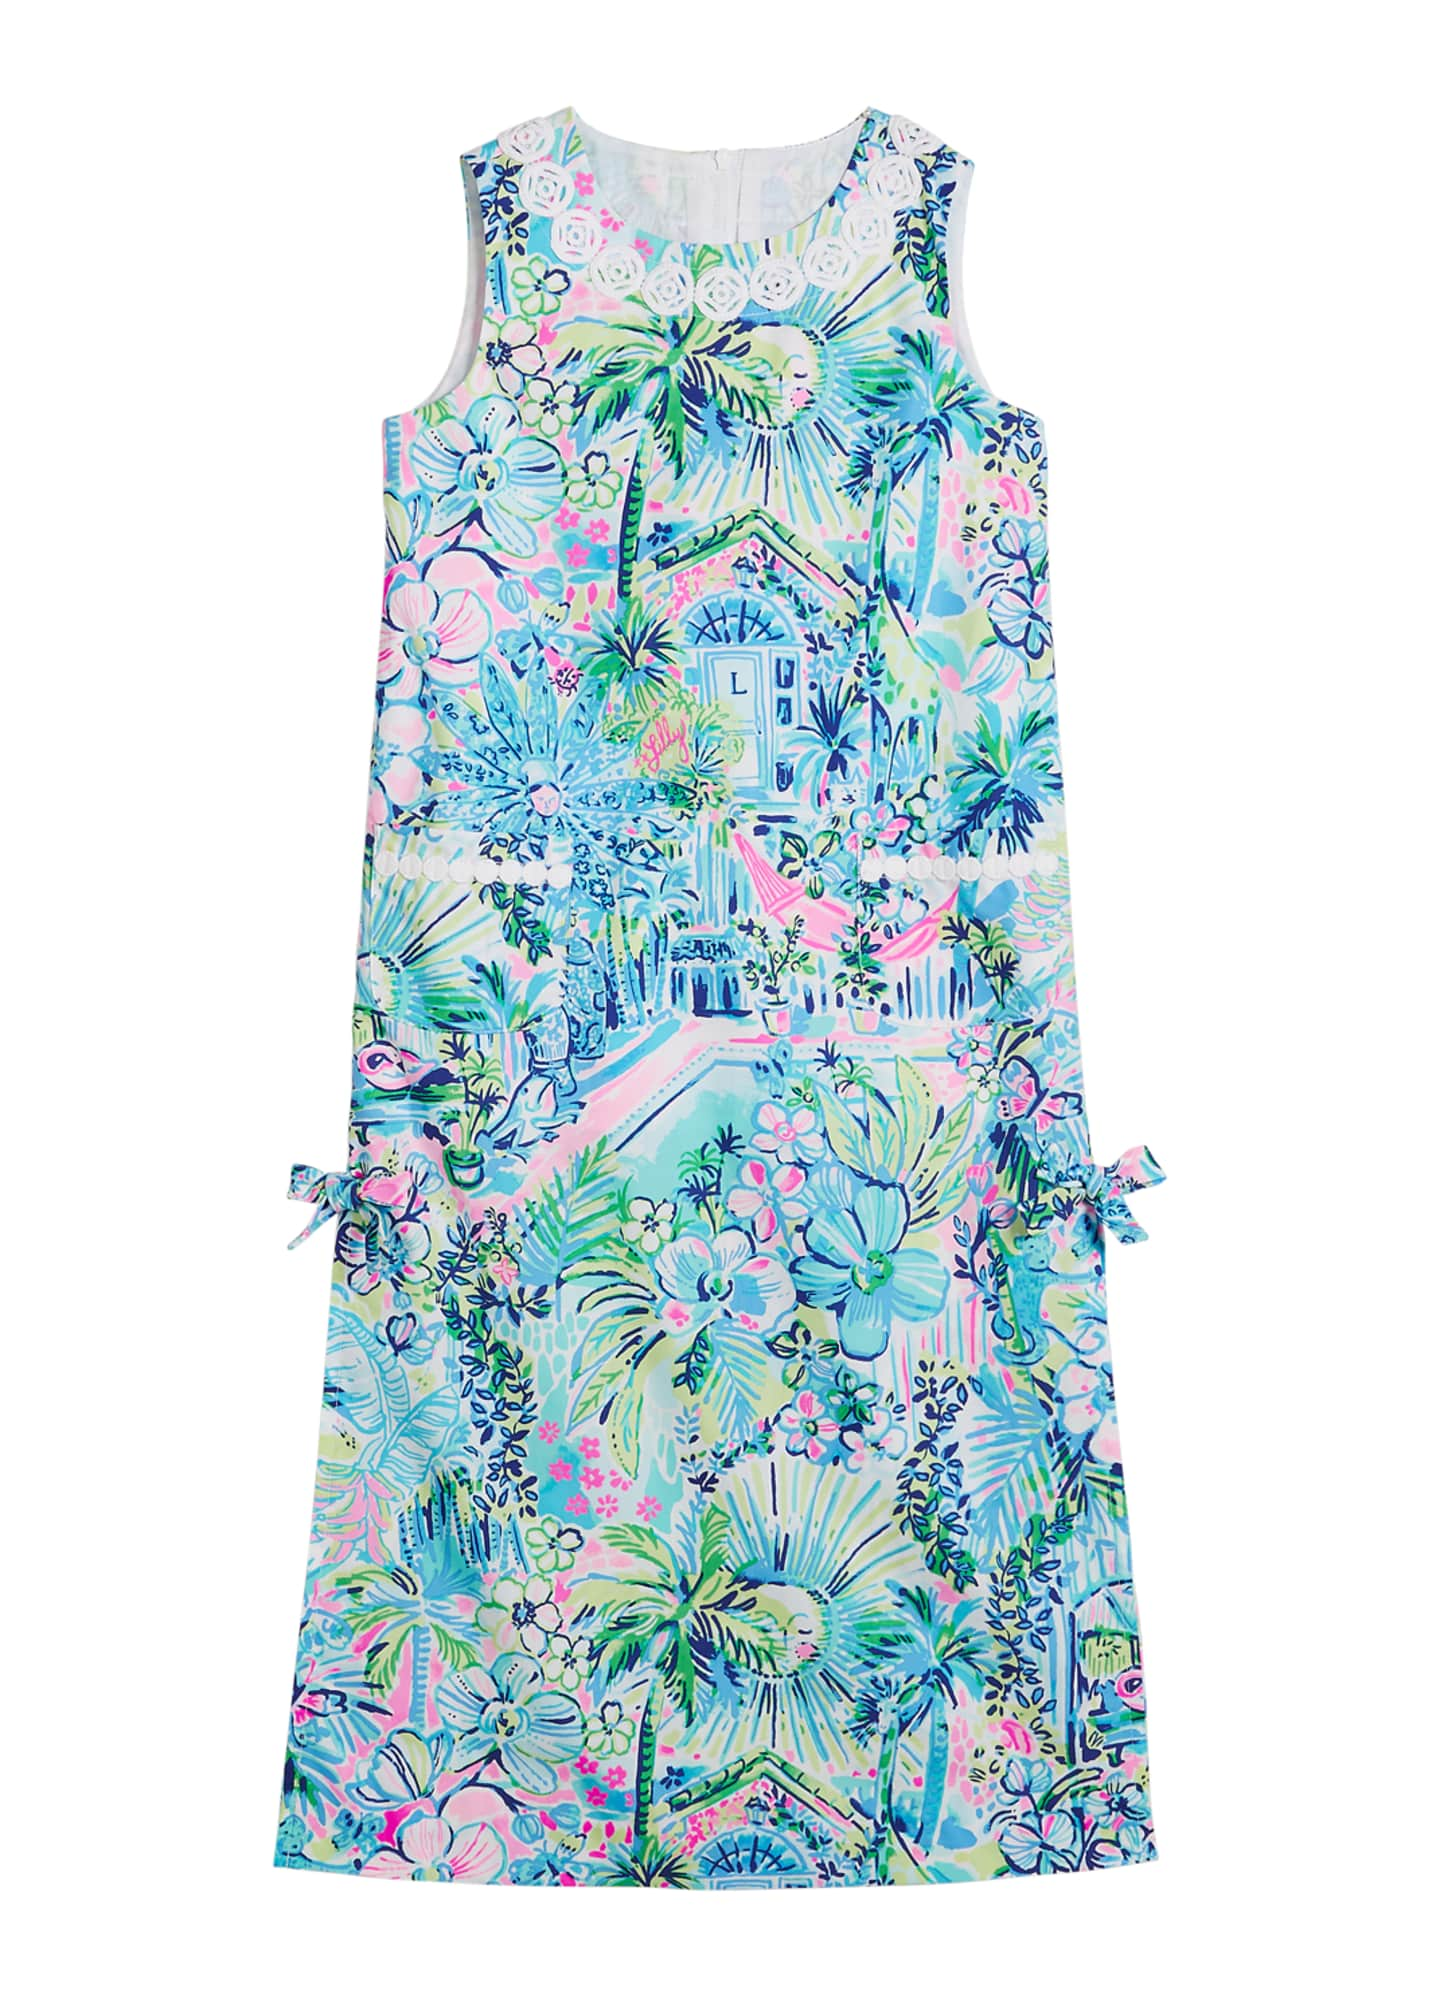 Lilly Pulitzer Little Lilly Classic Maxi Dress, Size